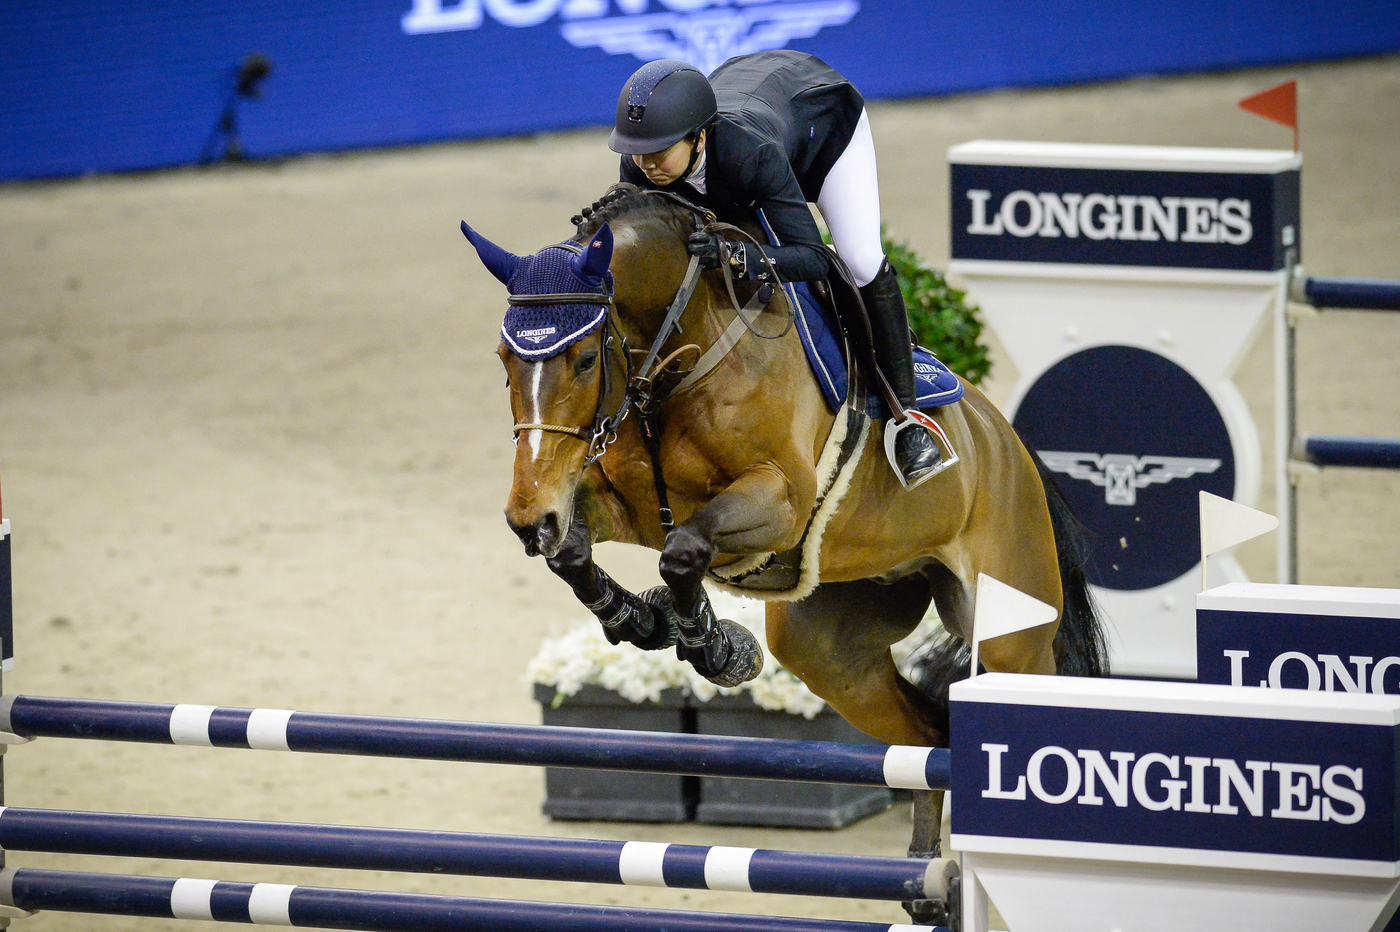 Longines Show Jumping Event: Luciana Diniz (POR) wins the Longines Grand Prix of the Longines CSI Basel 2